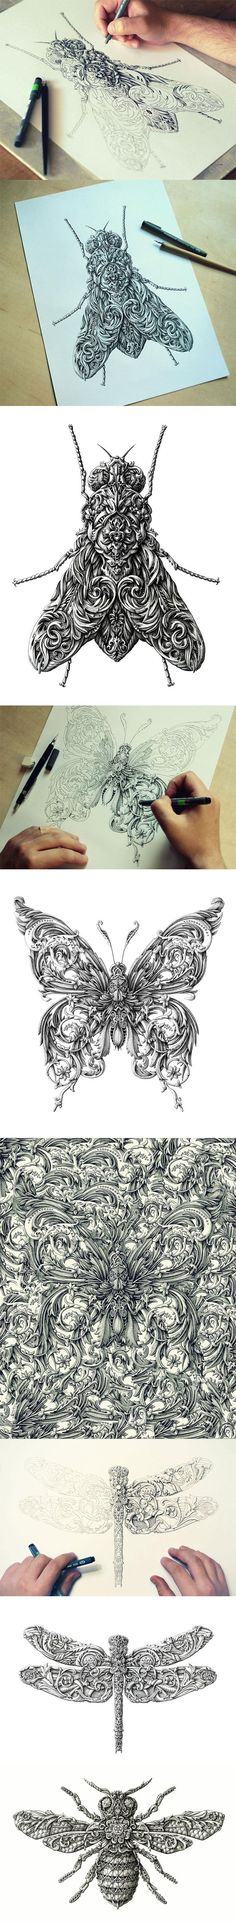 Awesome renaissance-style insect drawings.. if you click on the picture, read the comments, because they are hilarious!